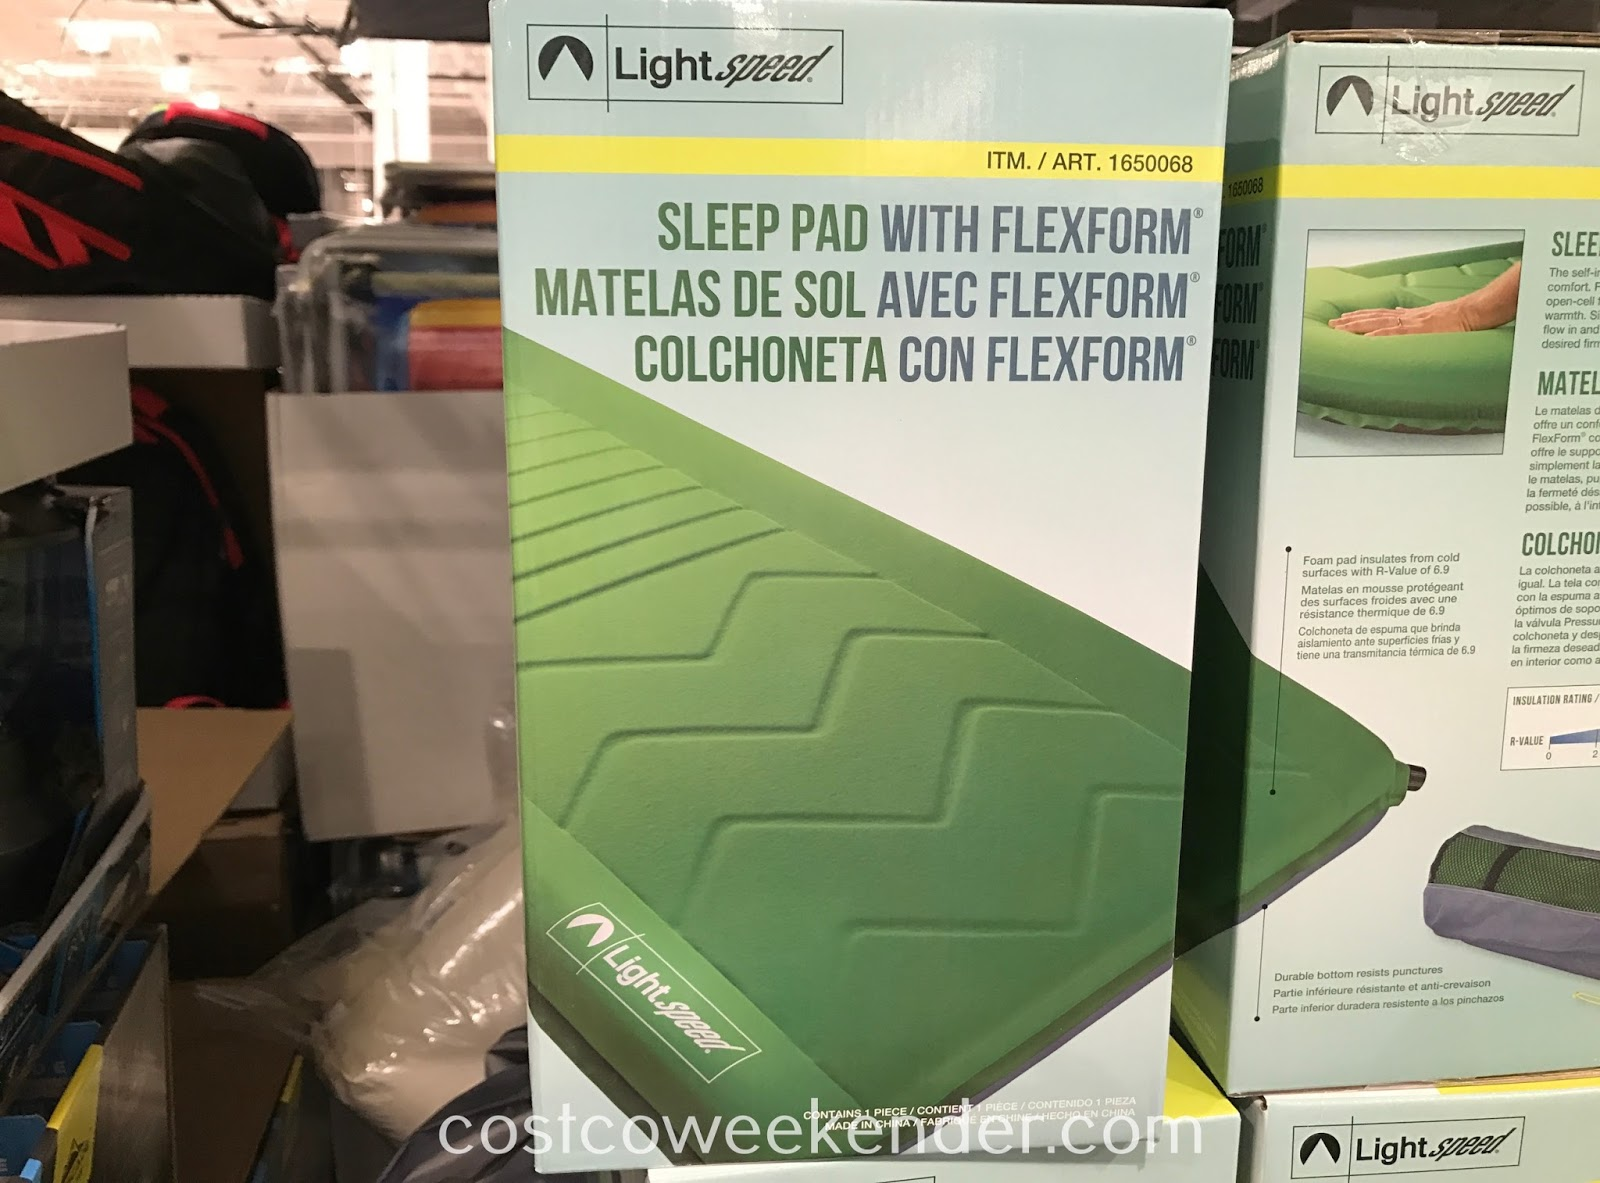 Don't sleep on the cold, hard ground when camping with the Lightspeed Self-Inflating Sleep Pad with FlexForm